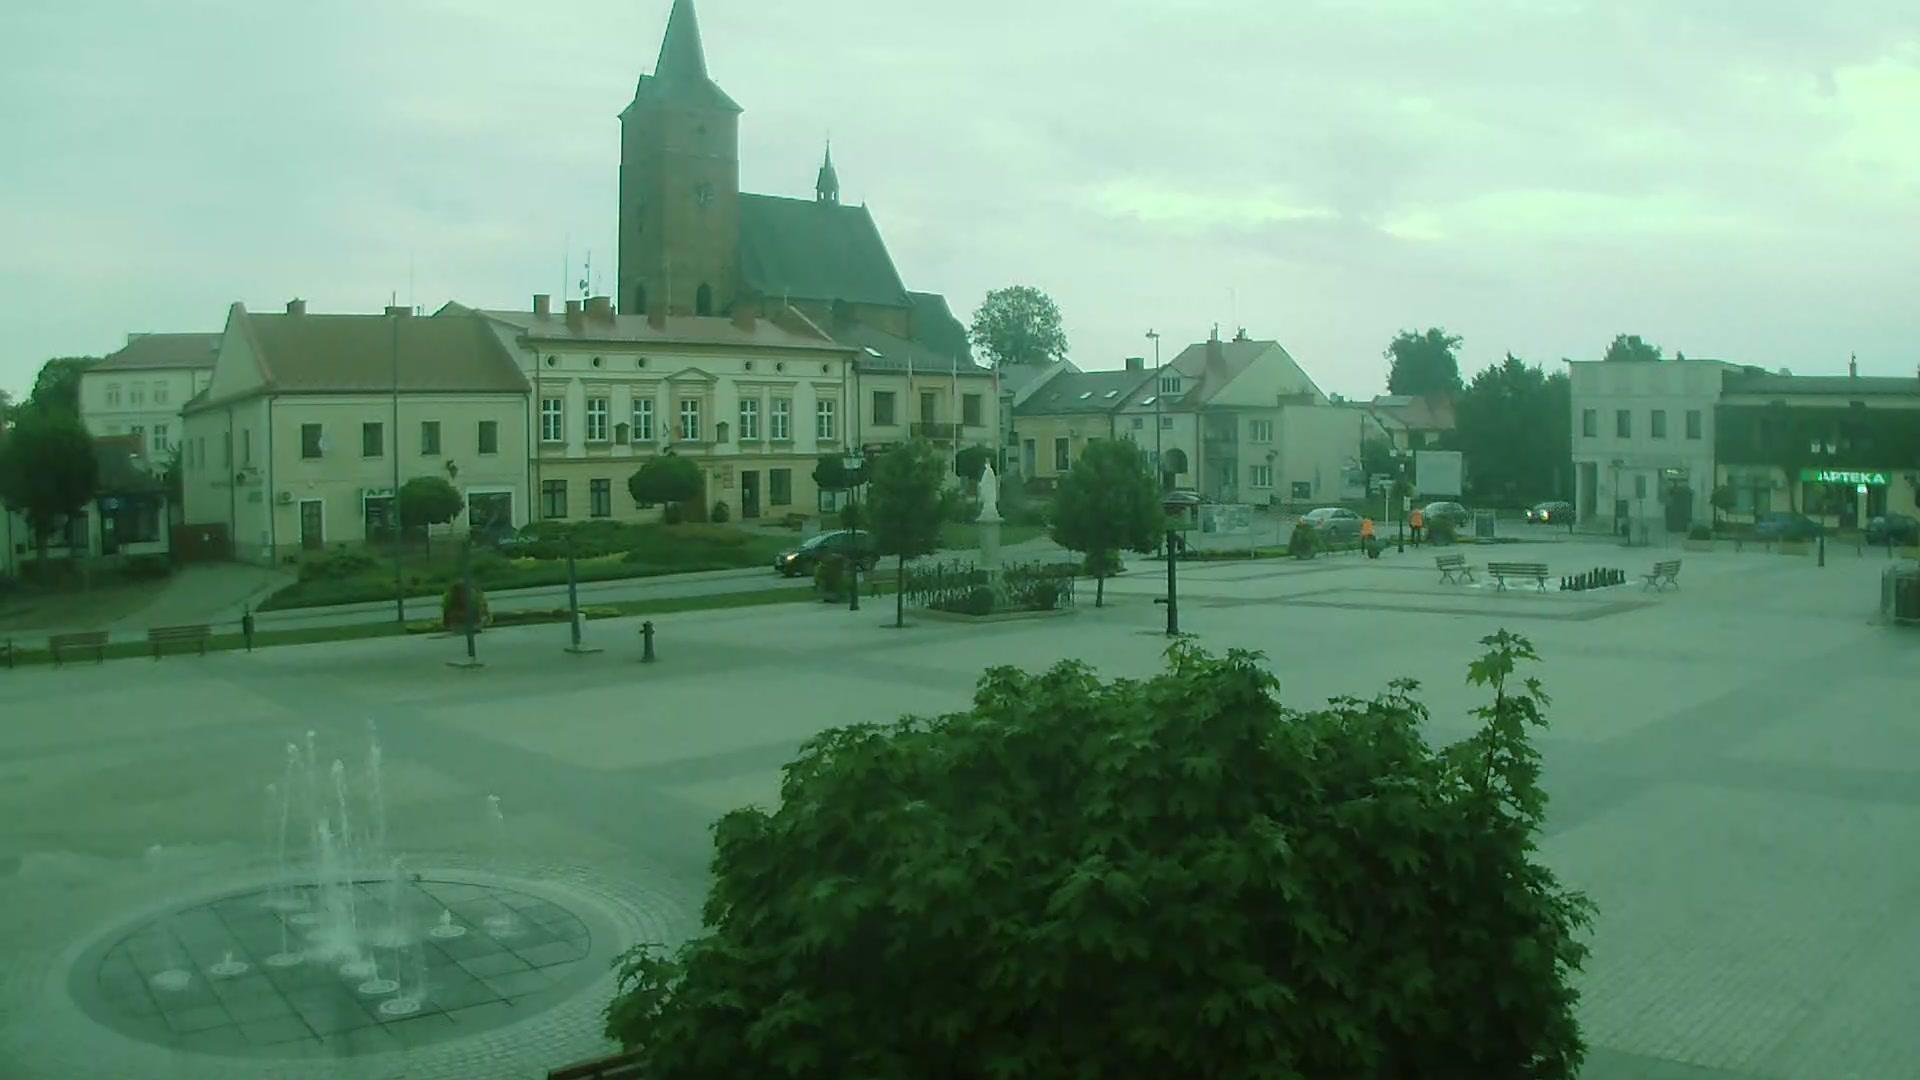 Webcam Pilzno: Market Square